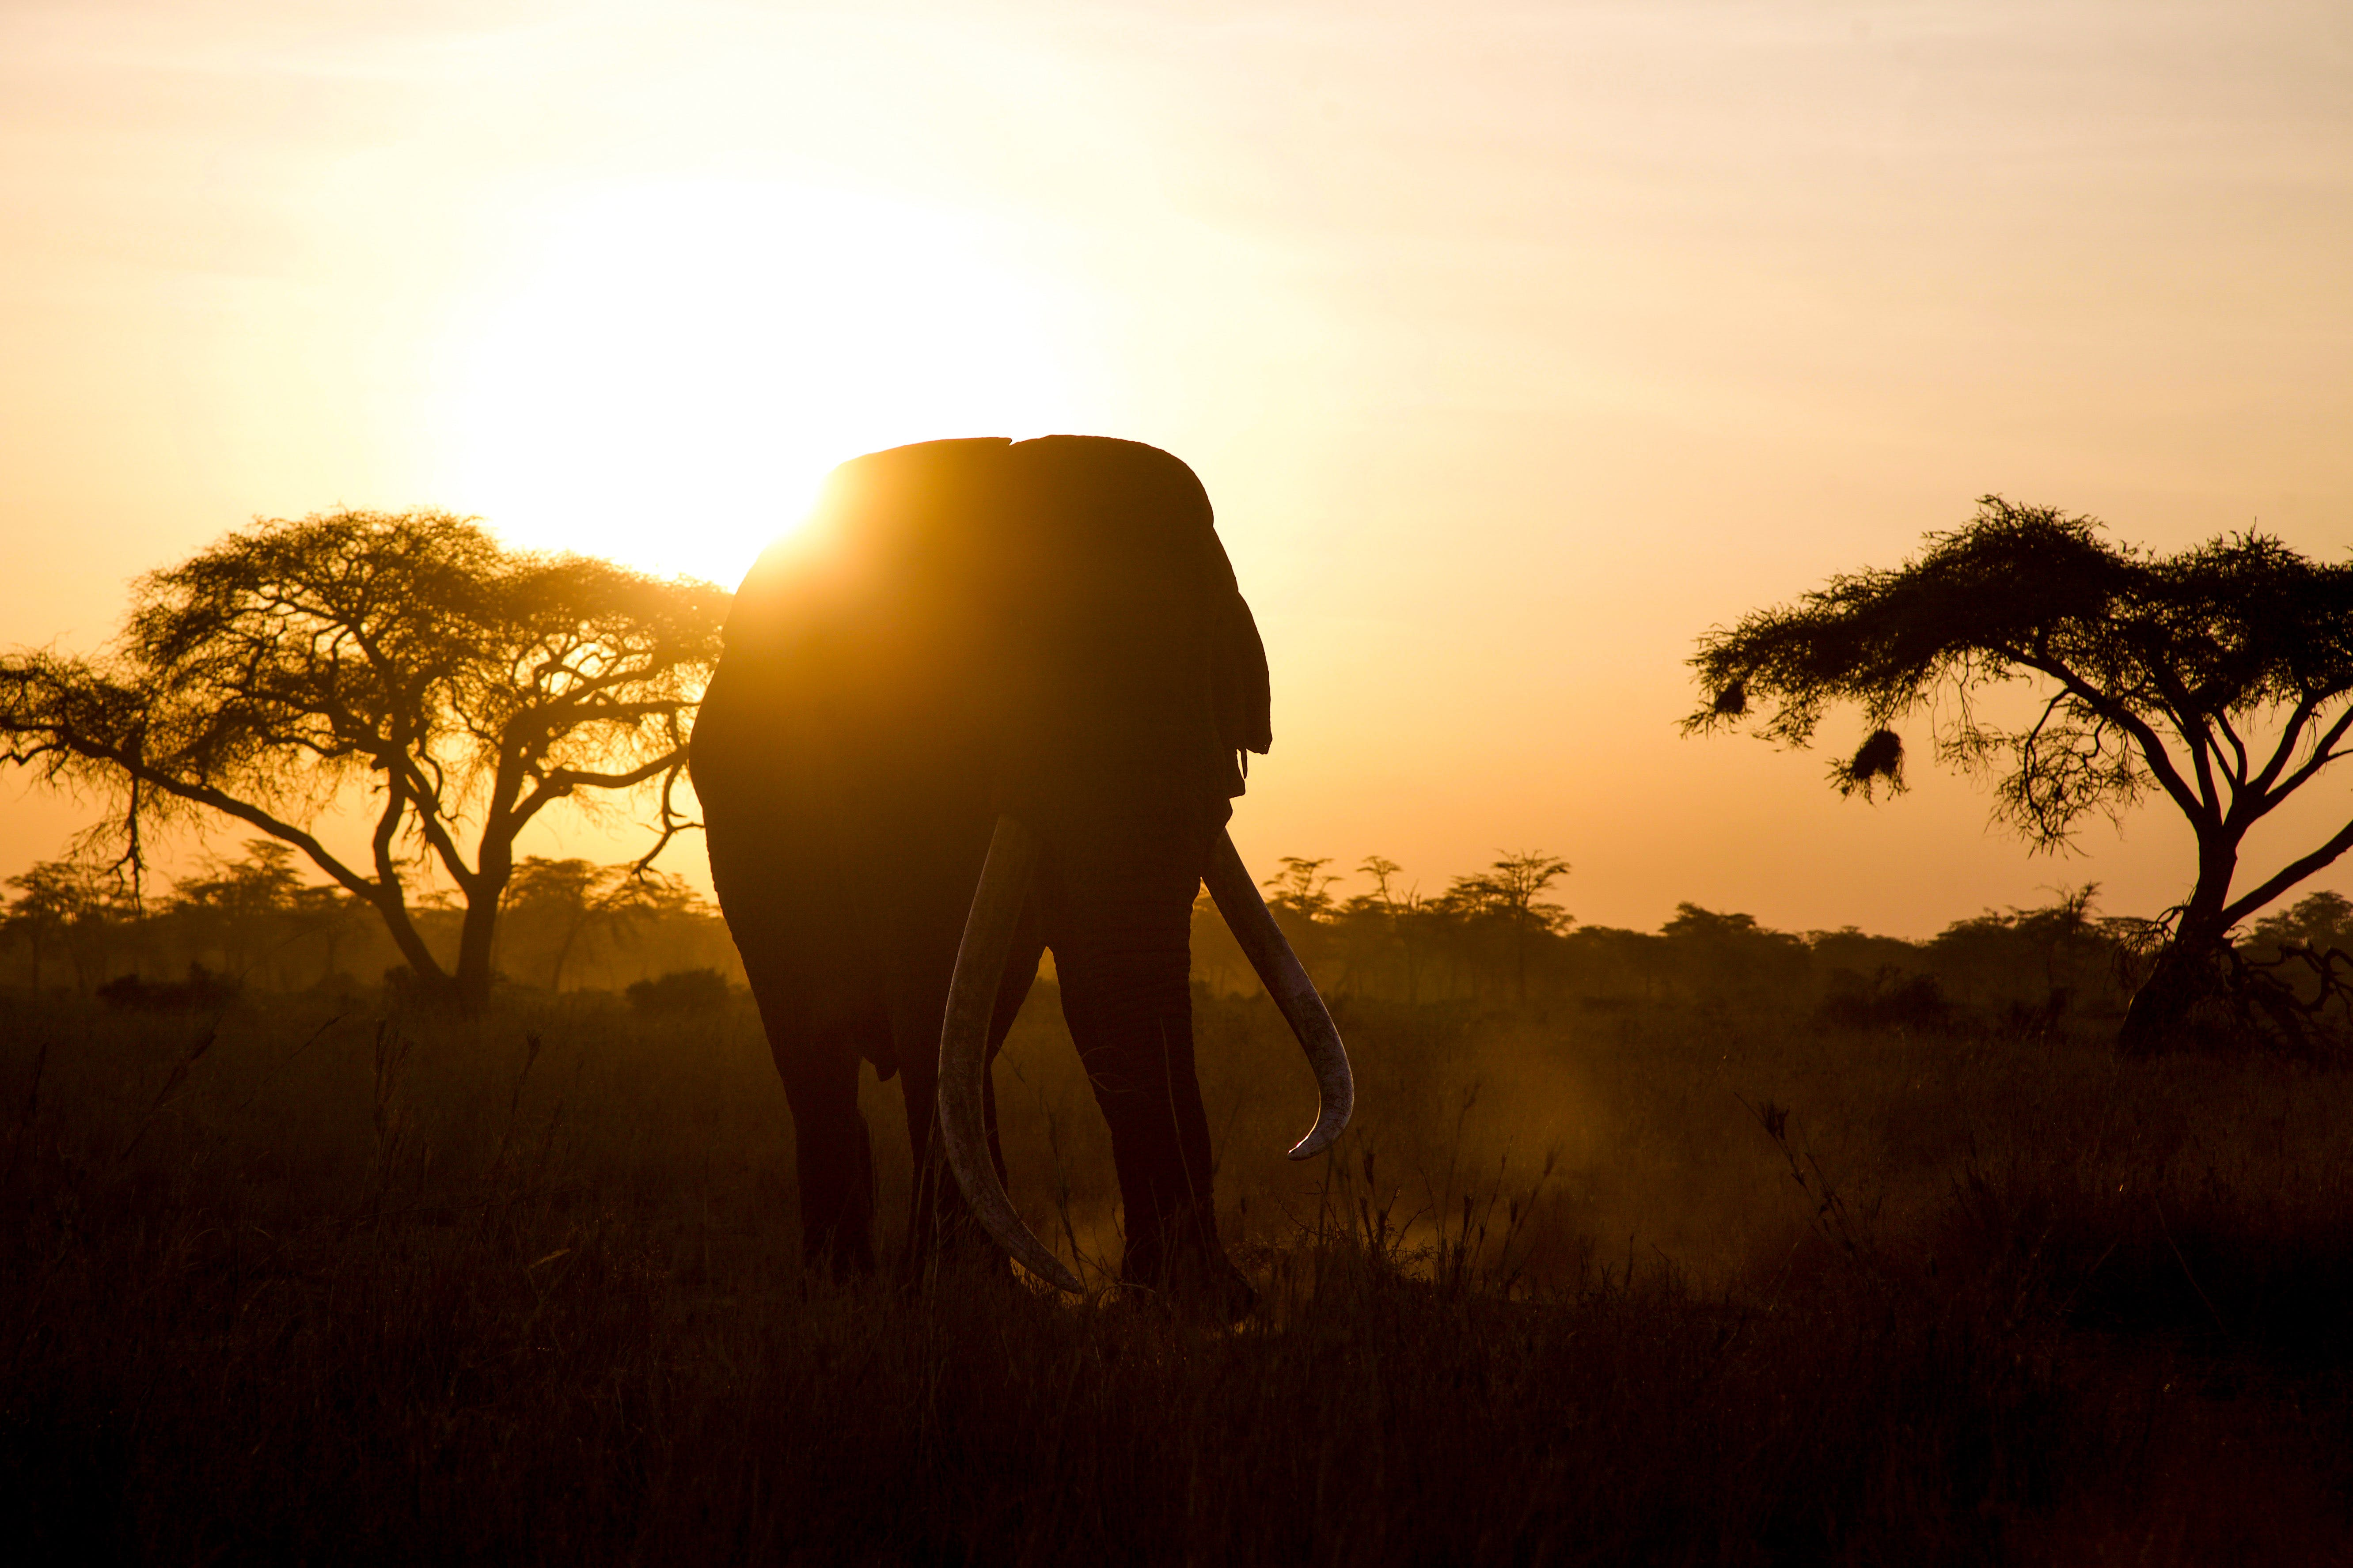 Silhouette of Elephant Walking During Golden Hour